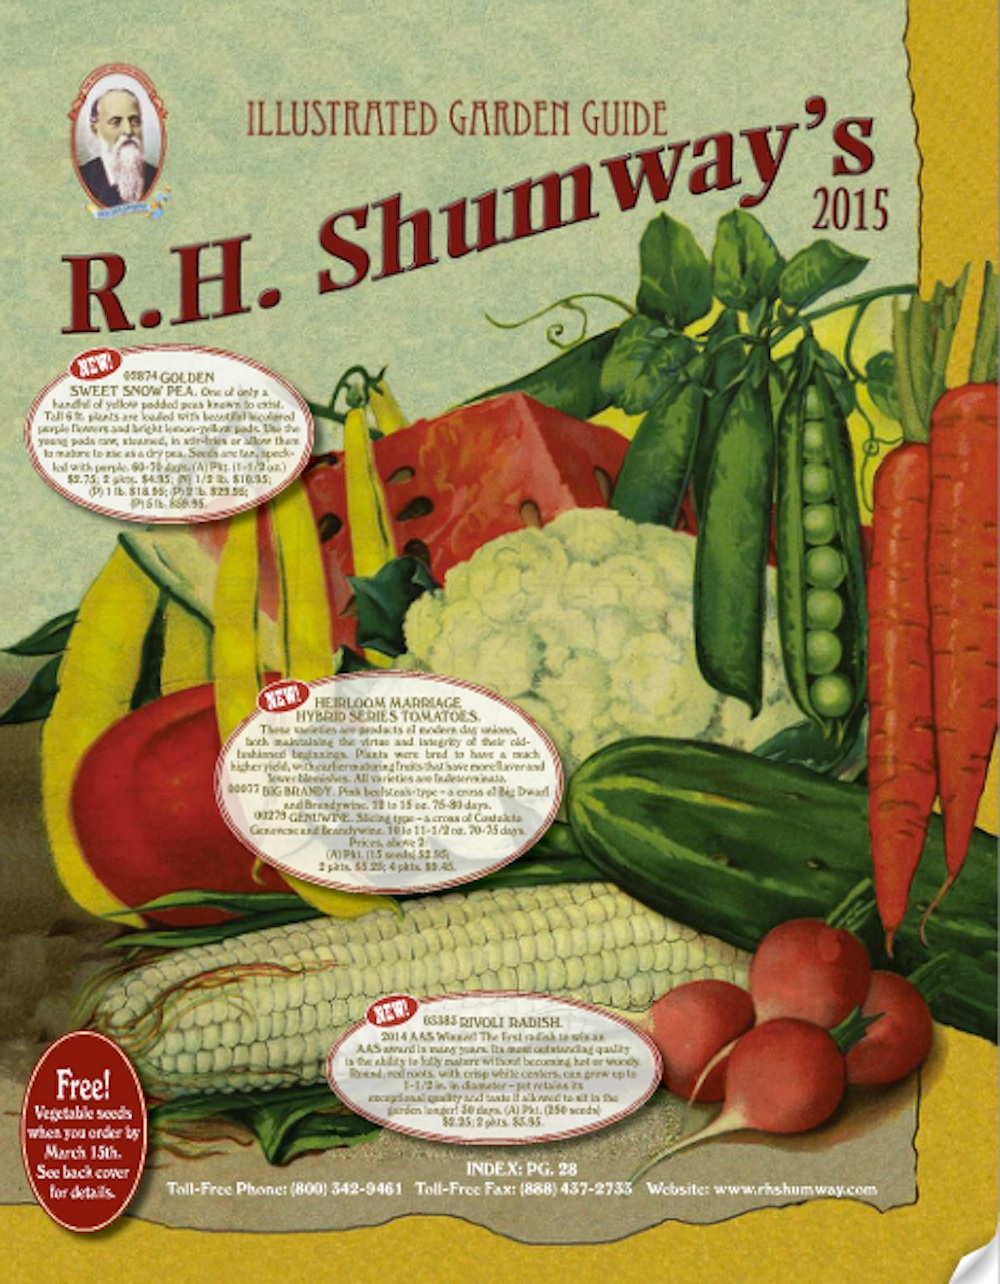 rh shumway is one of the grandaddies of the mail order seed business and they celebrate it with their oldtimey catalog itu0027s a large format newsprint